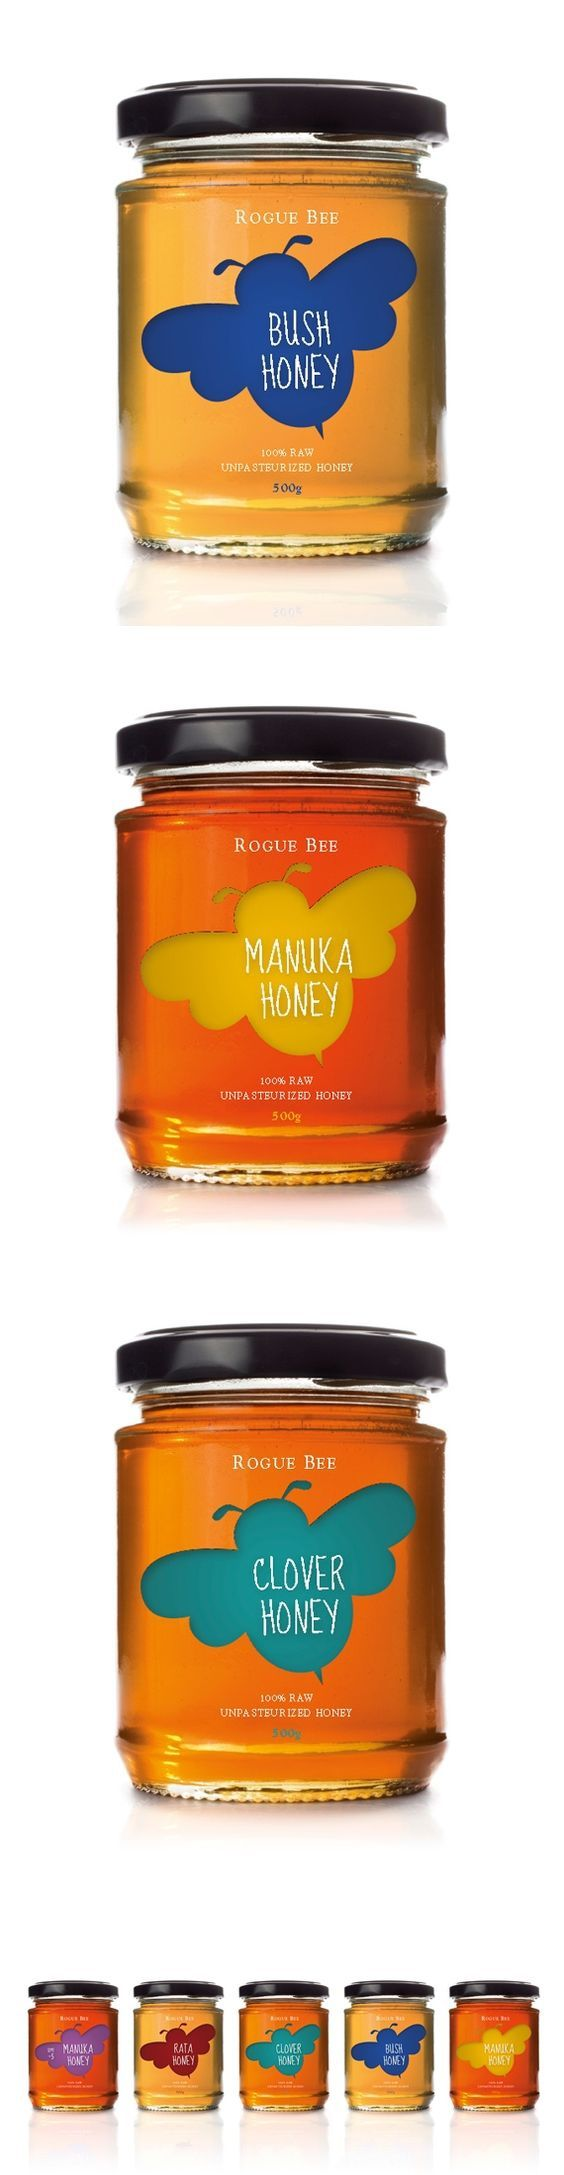 Rogue bee Honey